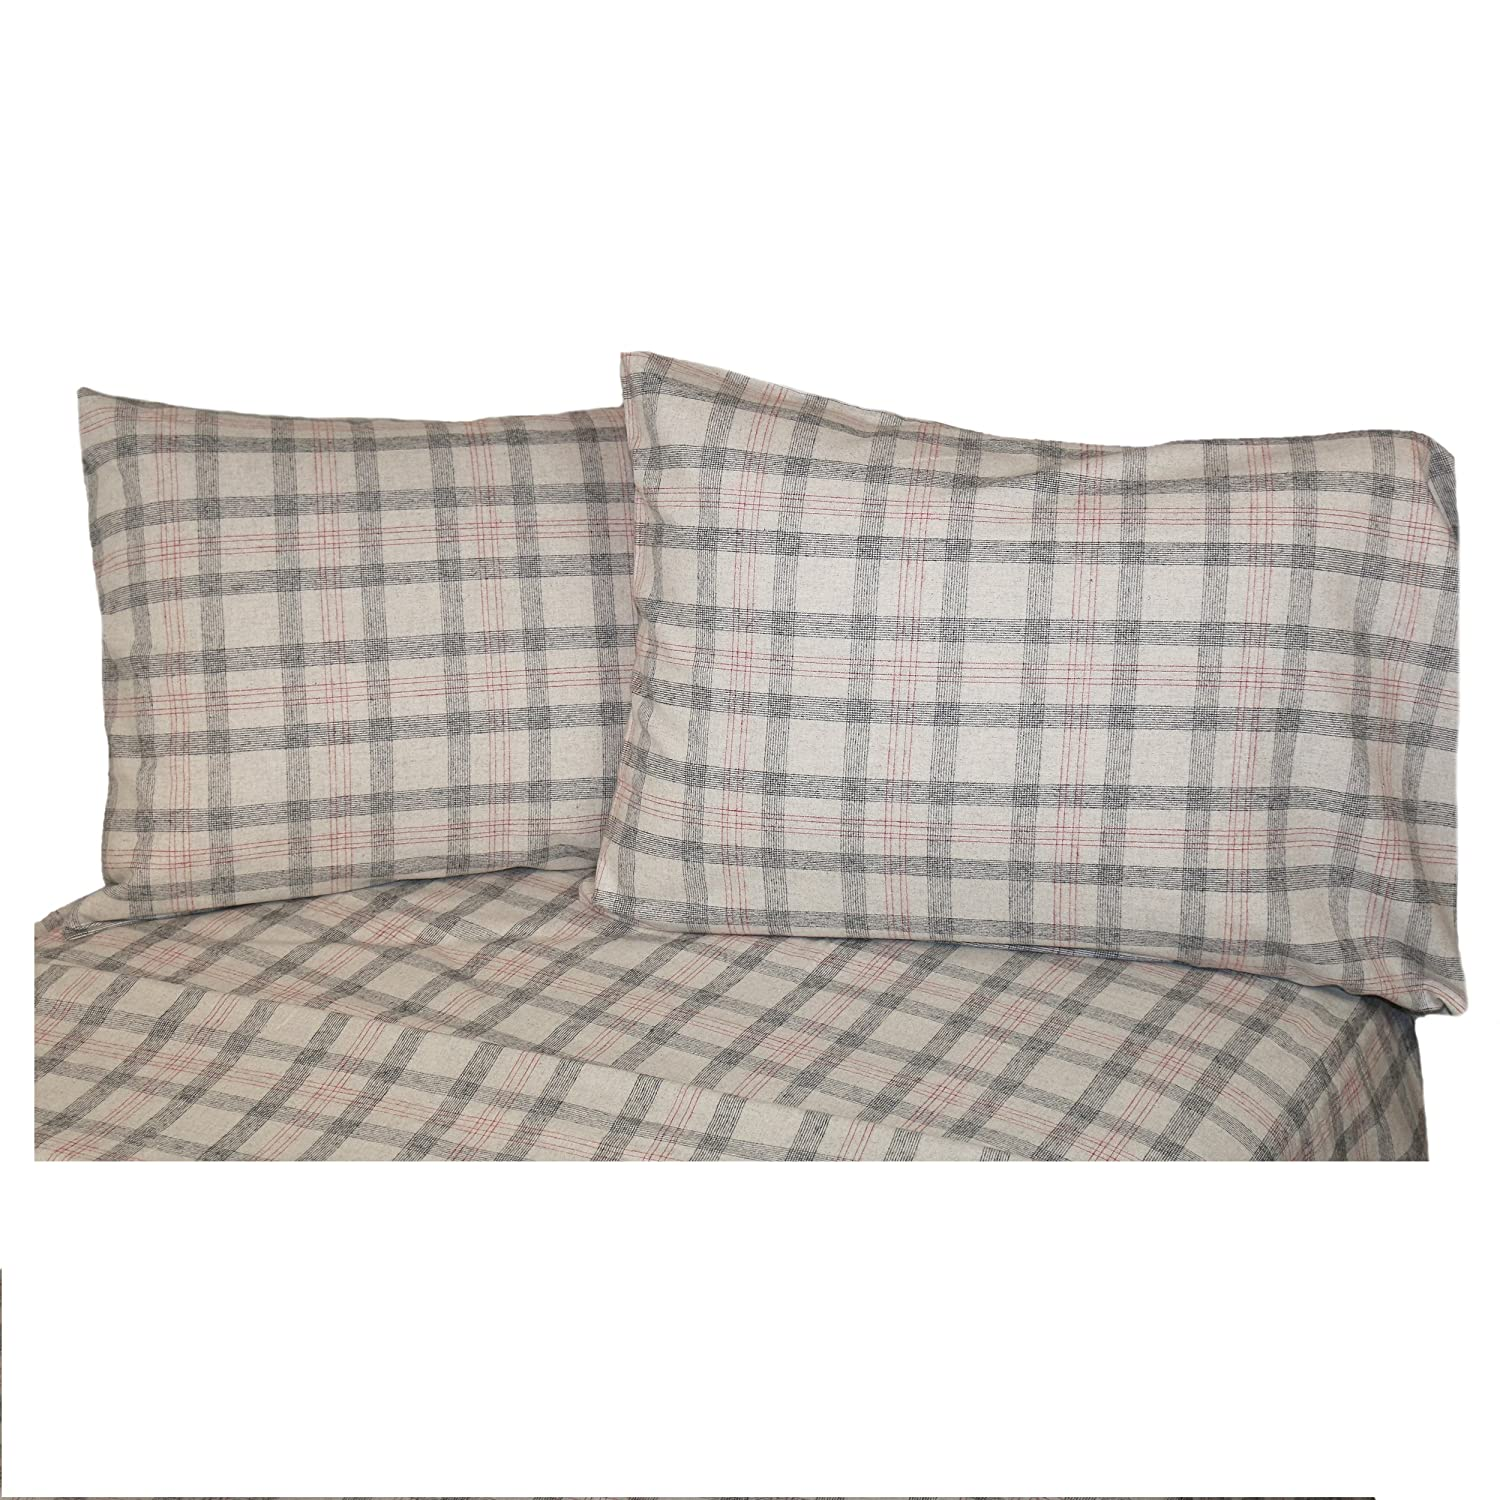 La Rochelle 10681 Heathered Plaid Flannel Sheet Set, Full, Gray/Red Check